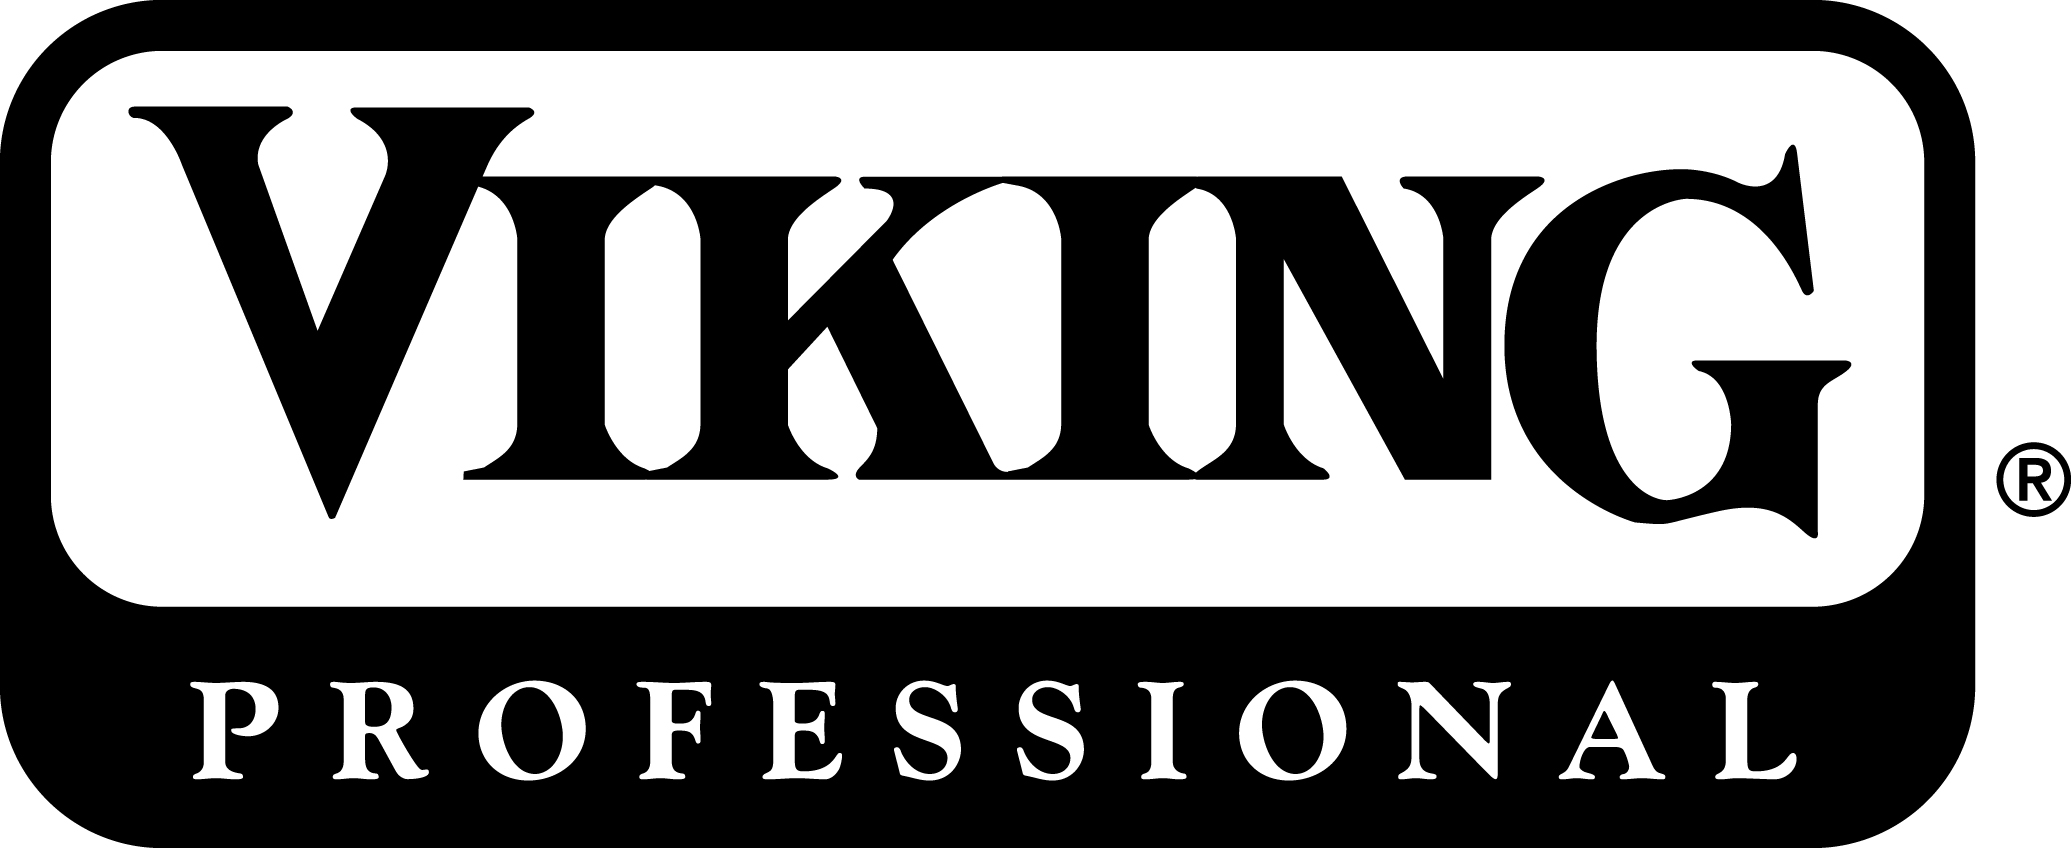 Viking Fridge Service, Kenmore Refrigerator Repair